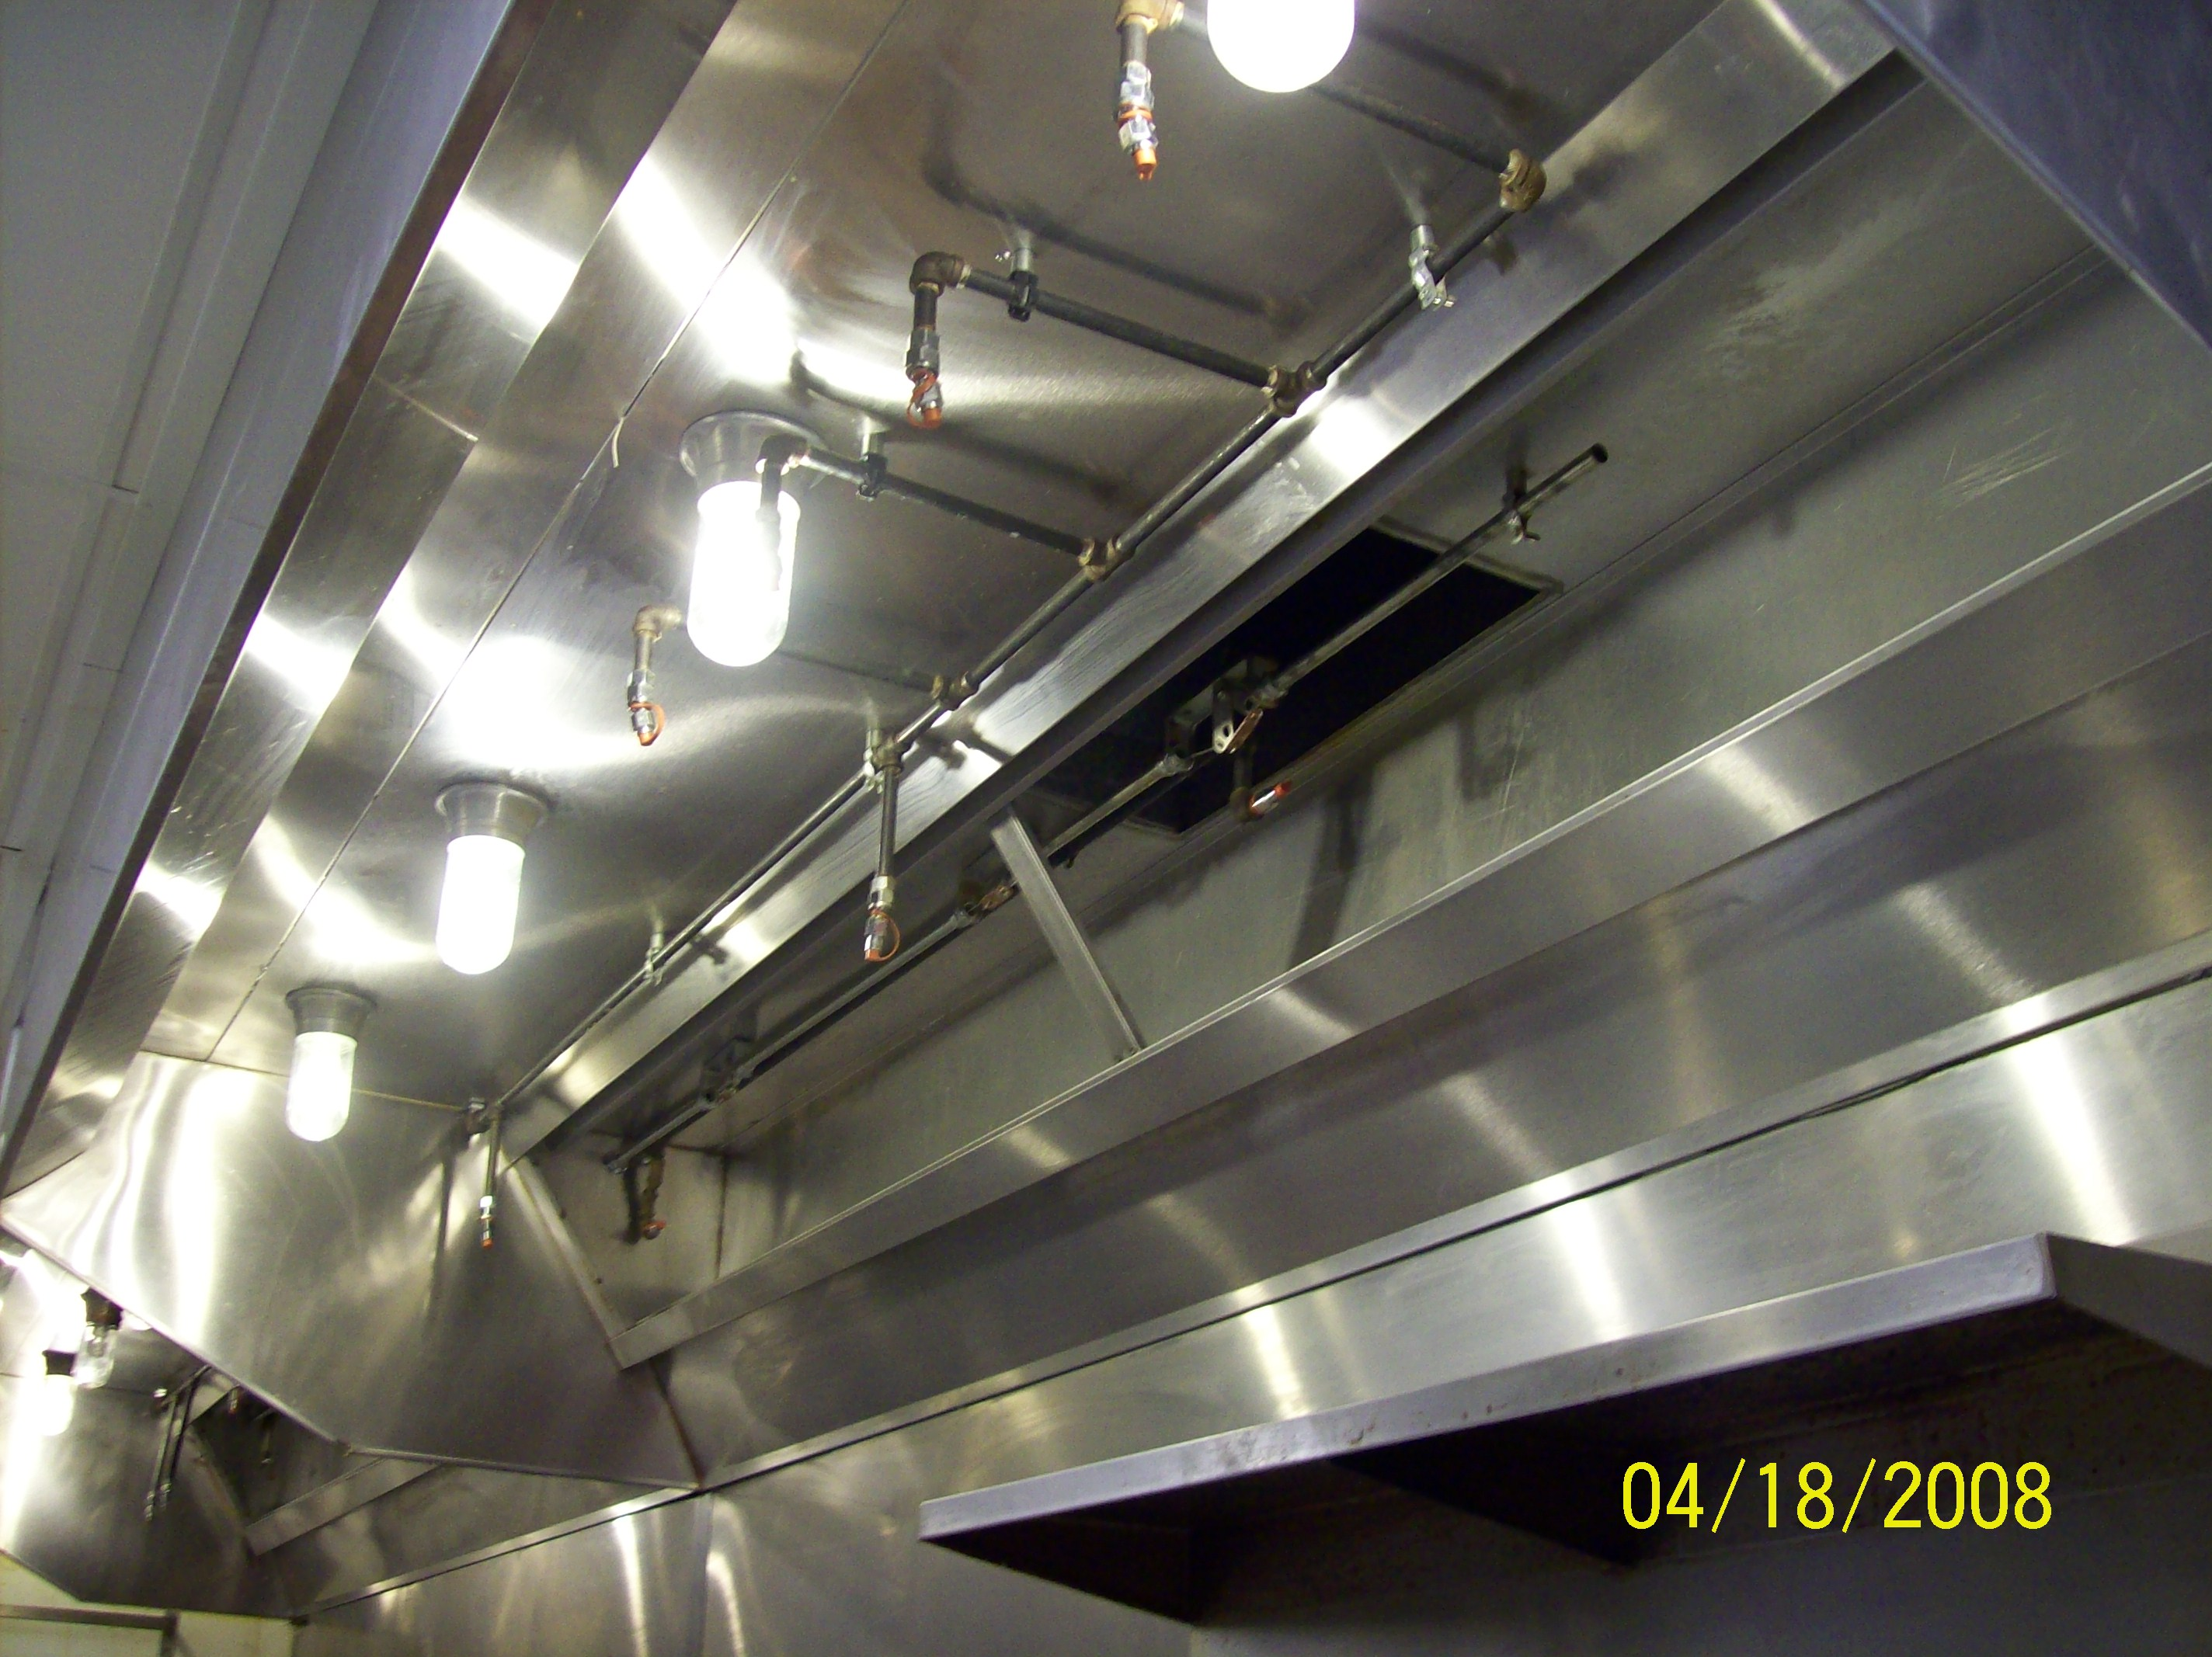 Restaurant Hood Exhaust Fan : Hood cleaning ae exhaust duct services